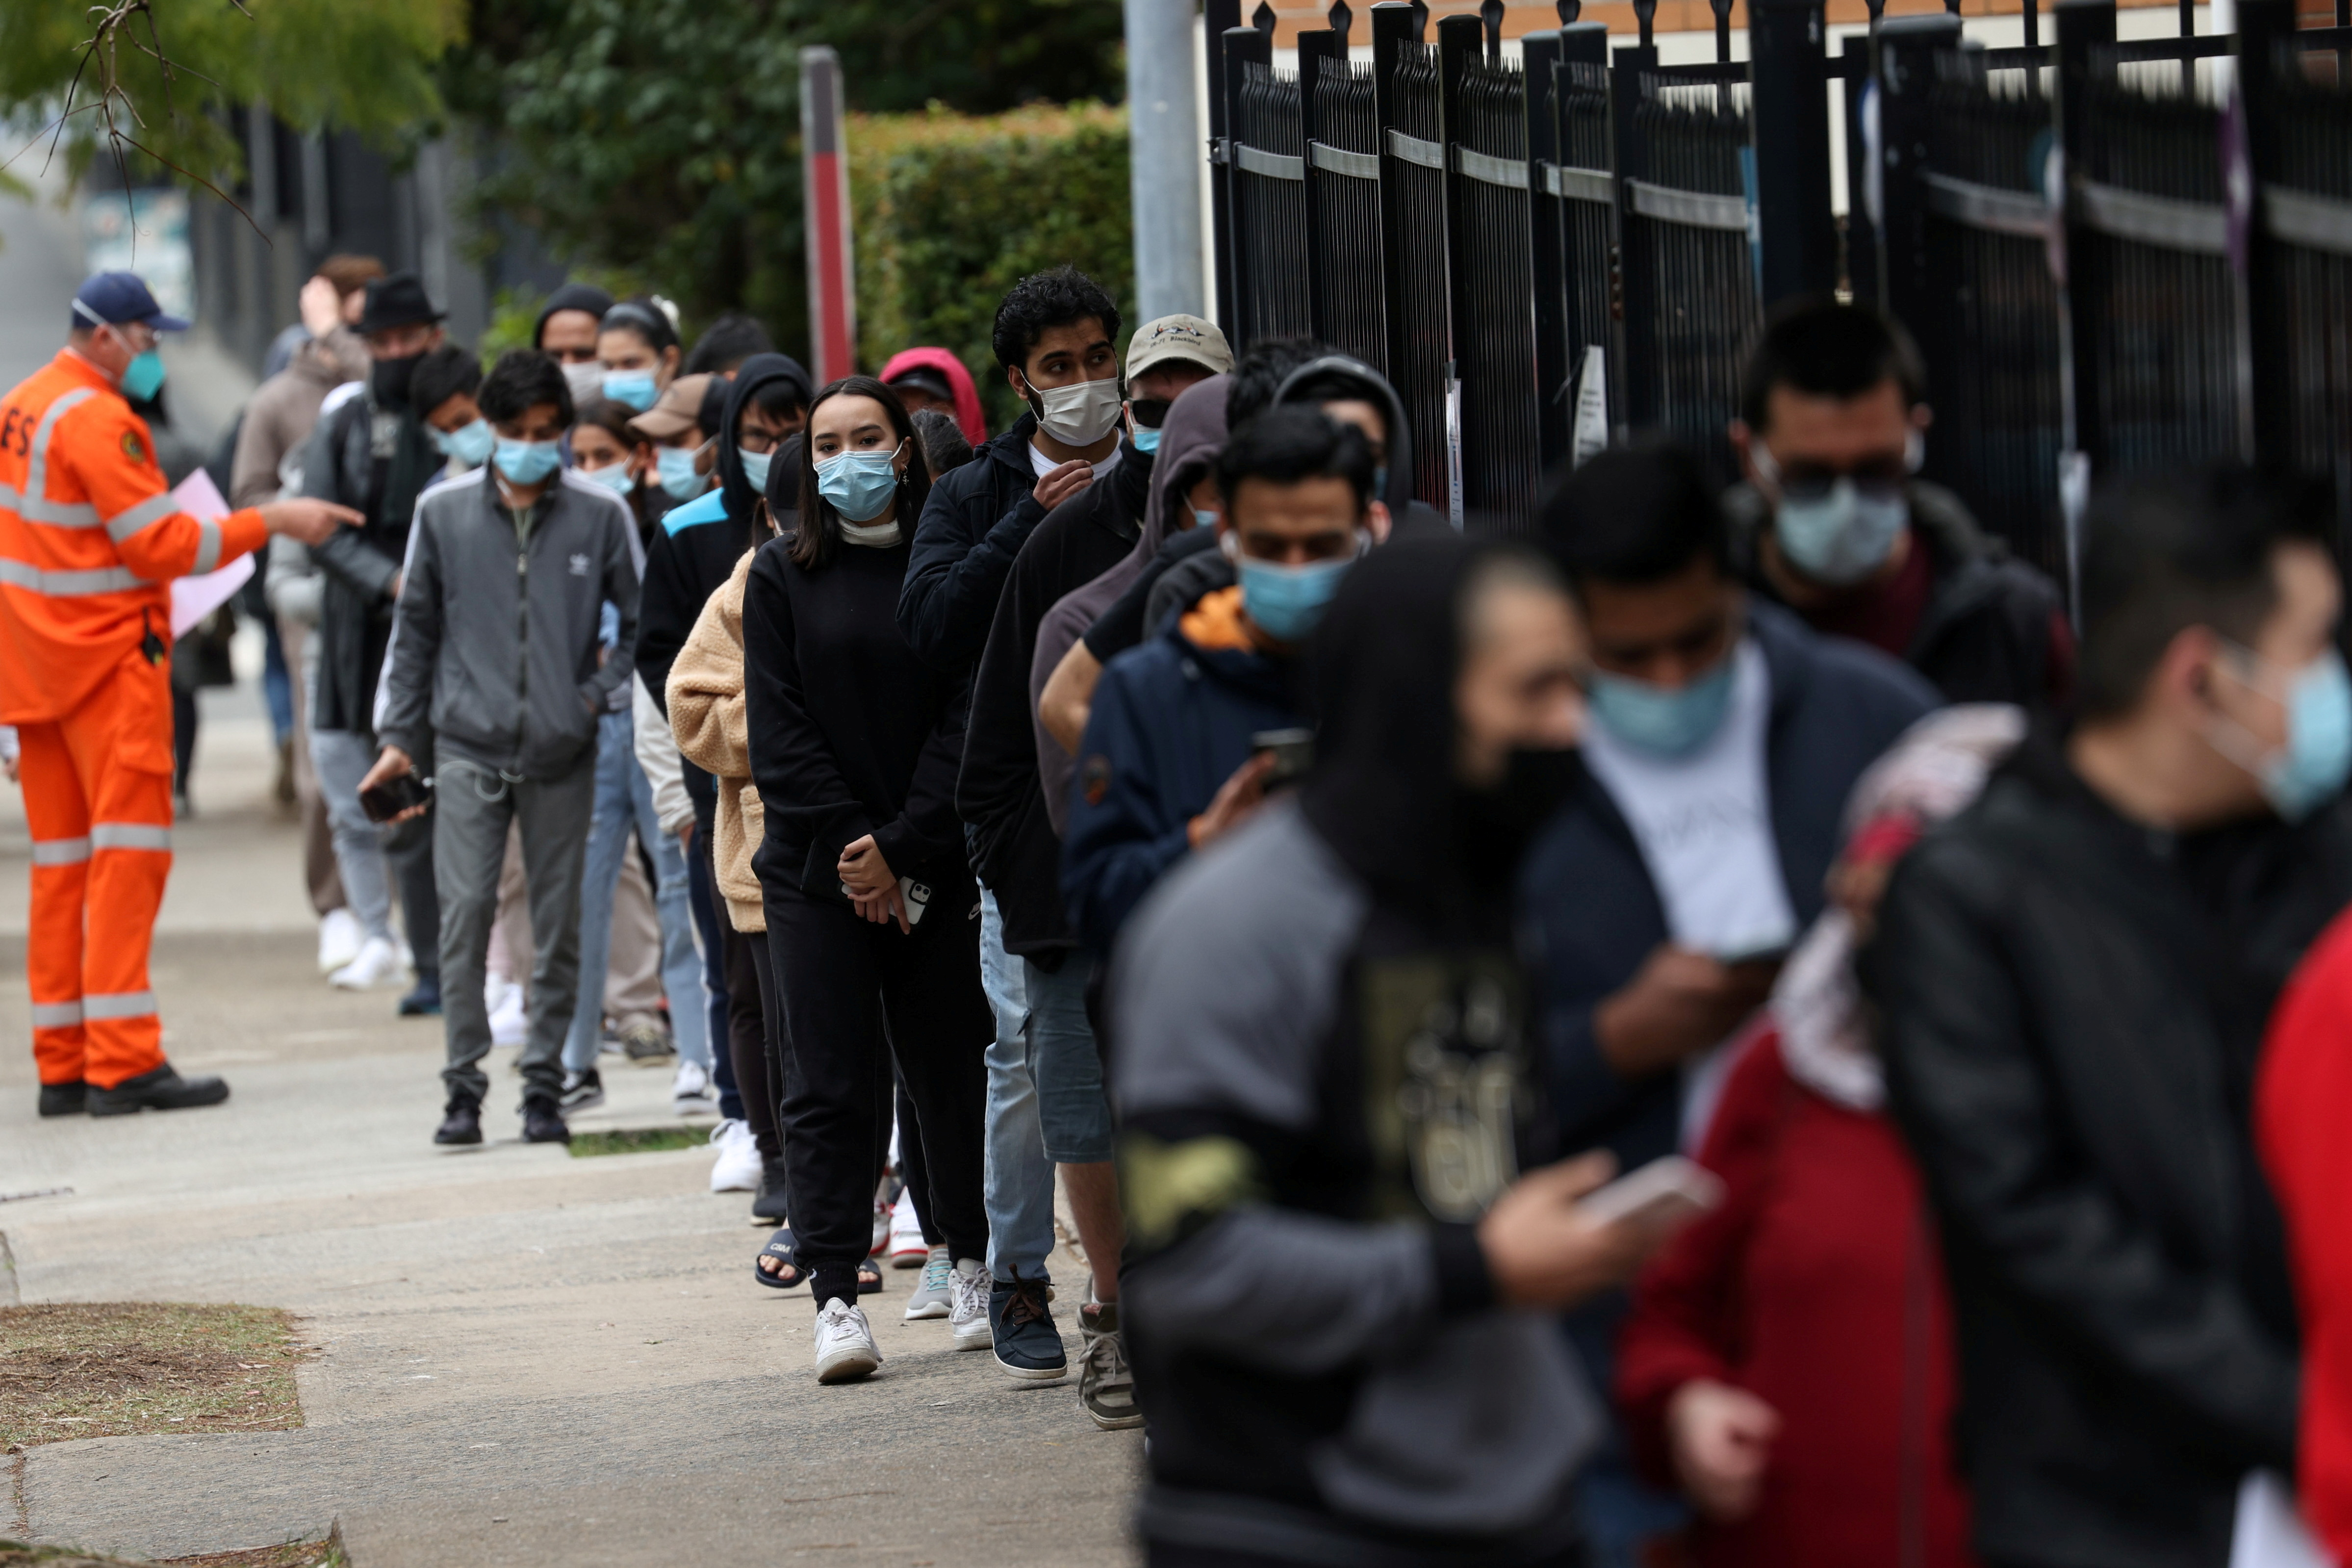 People wait in line outside a coronavirus disease (COVID-19) vaccination clinic in the Bankstown suburb during a lockdown to curb an outbreak of cases in Sydney, Australia, August 25, 2021.  REUTERS/Loren Elliott/File Photo